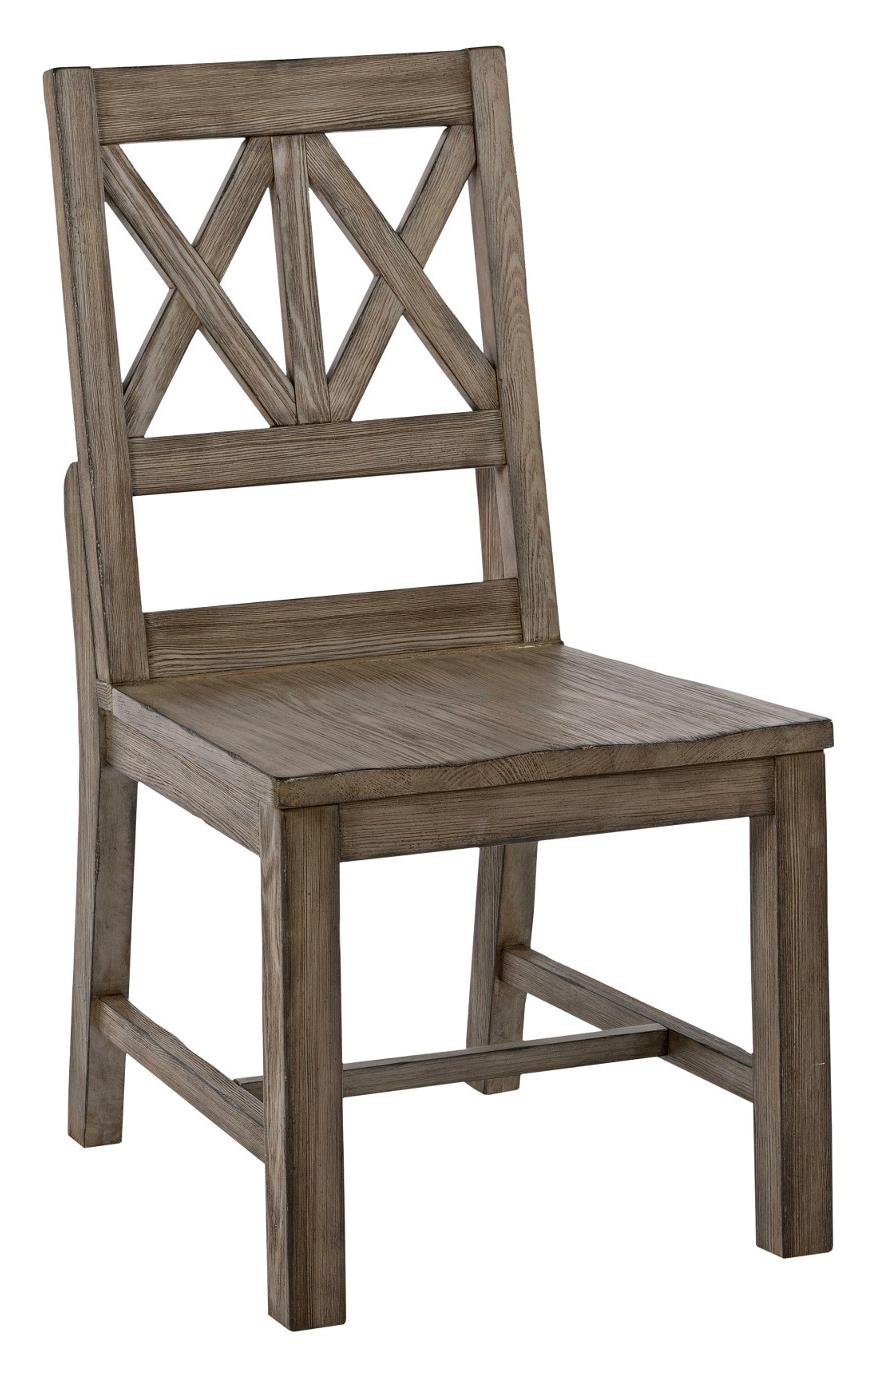 Rustic Solid Wood Side Chair With Weathered Gray Finish And X Lattice Back